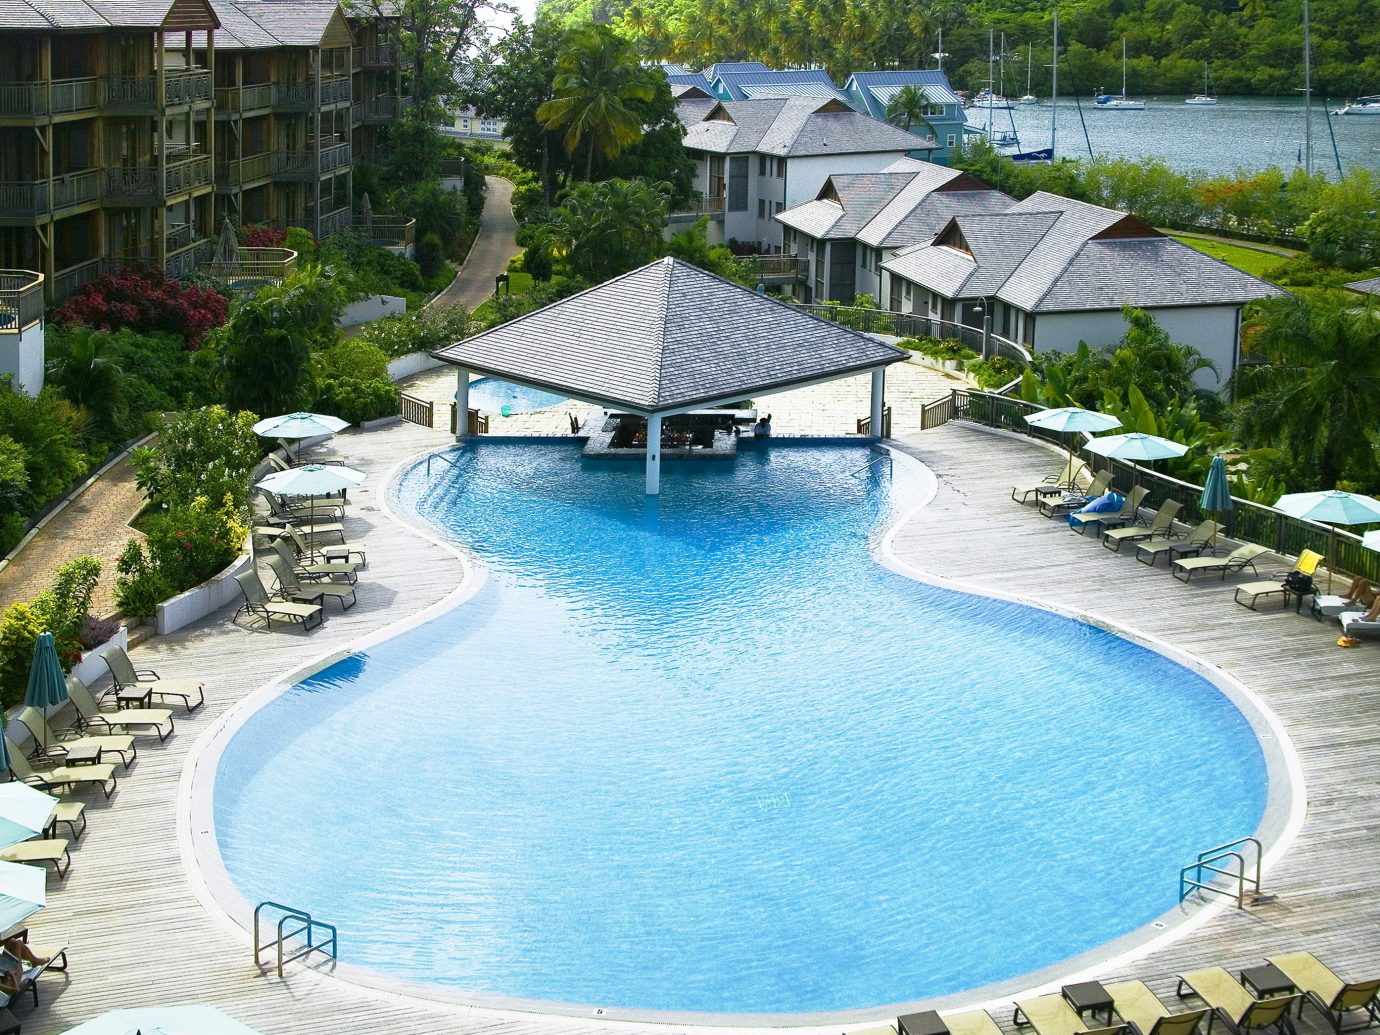 Hotels Luxury Travel water swimming pool outdoor Resort Pool property estate backyard condominium resort town swimming Villa surrounded